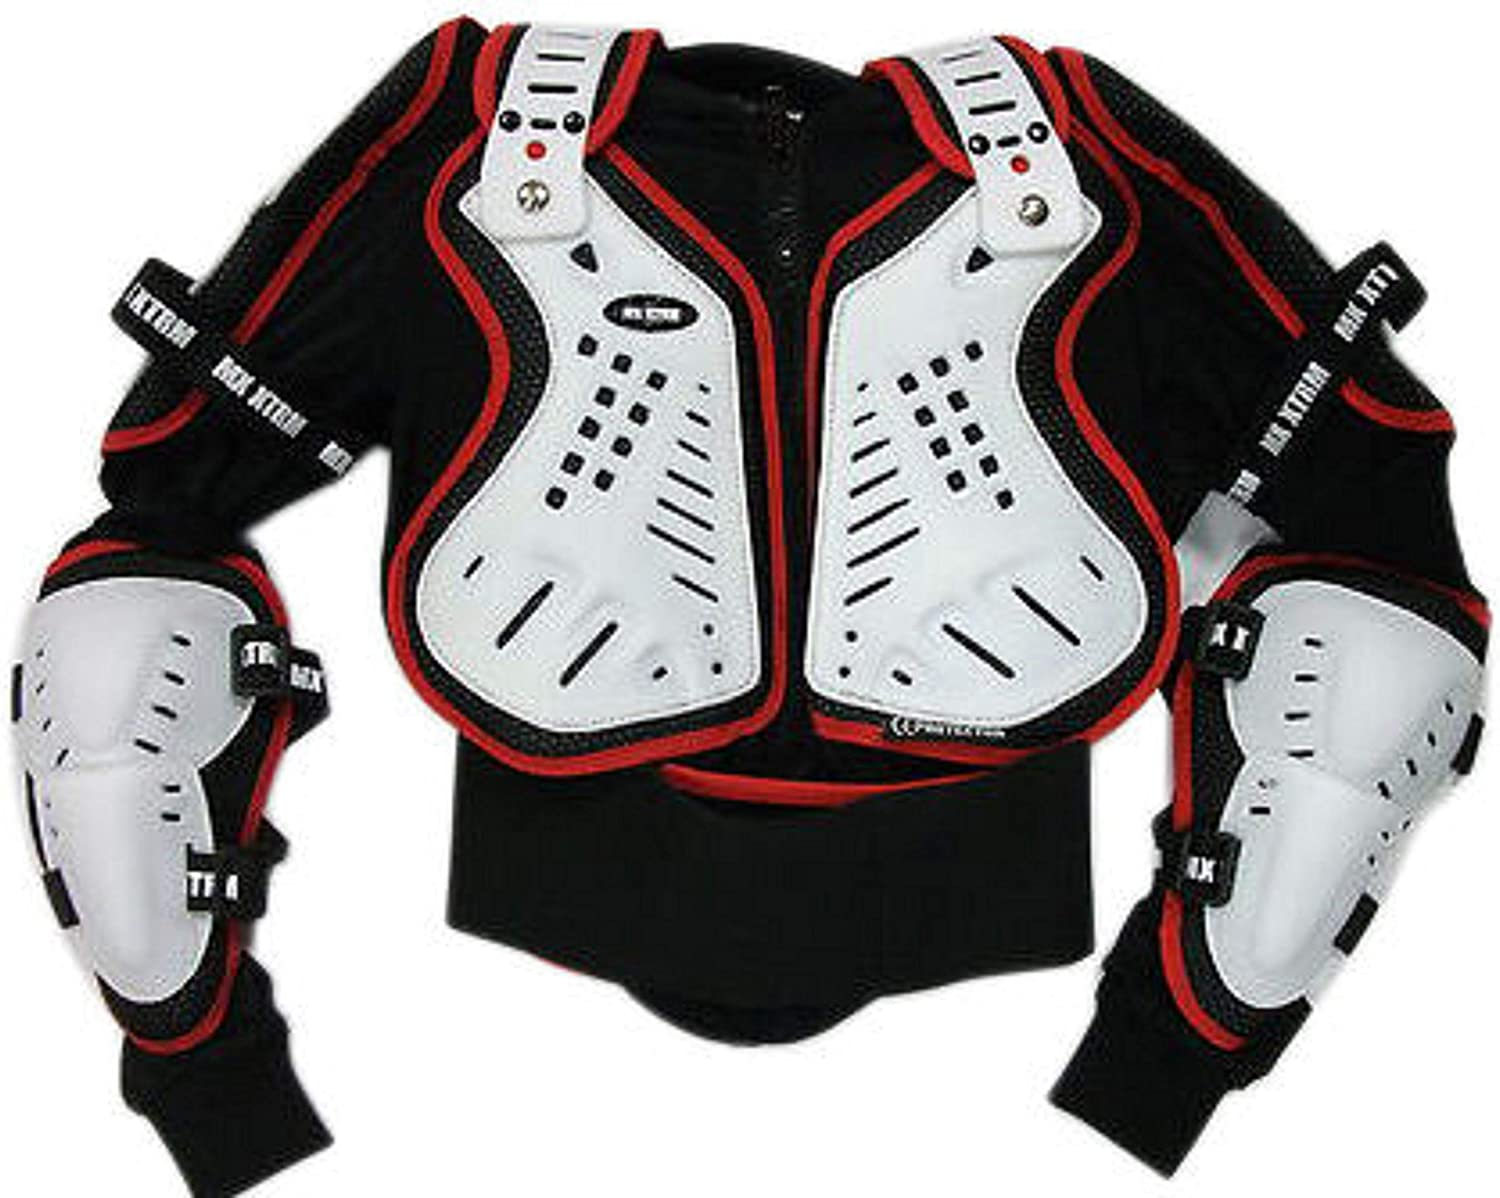 Adult Motocross Kit 2020 Body Armour CE Approved Off Road Quad Dirt Bike BMX Racing Motorcycle Protective Guard Full Jacket White//Black////Red With XTRM Neck Brace Mx Safety Collar Roll S